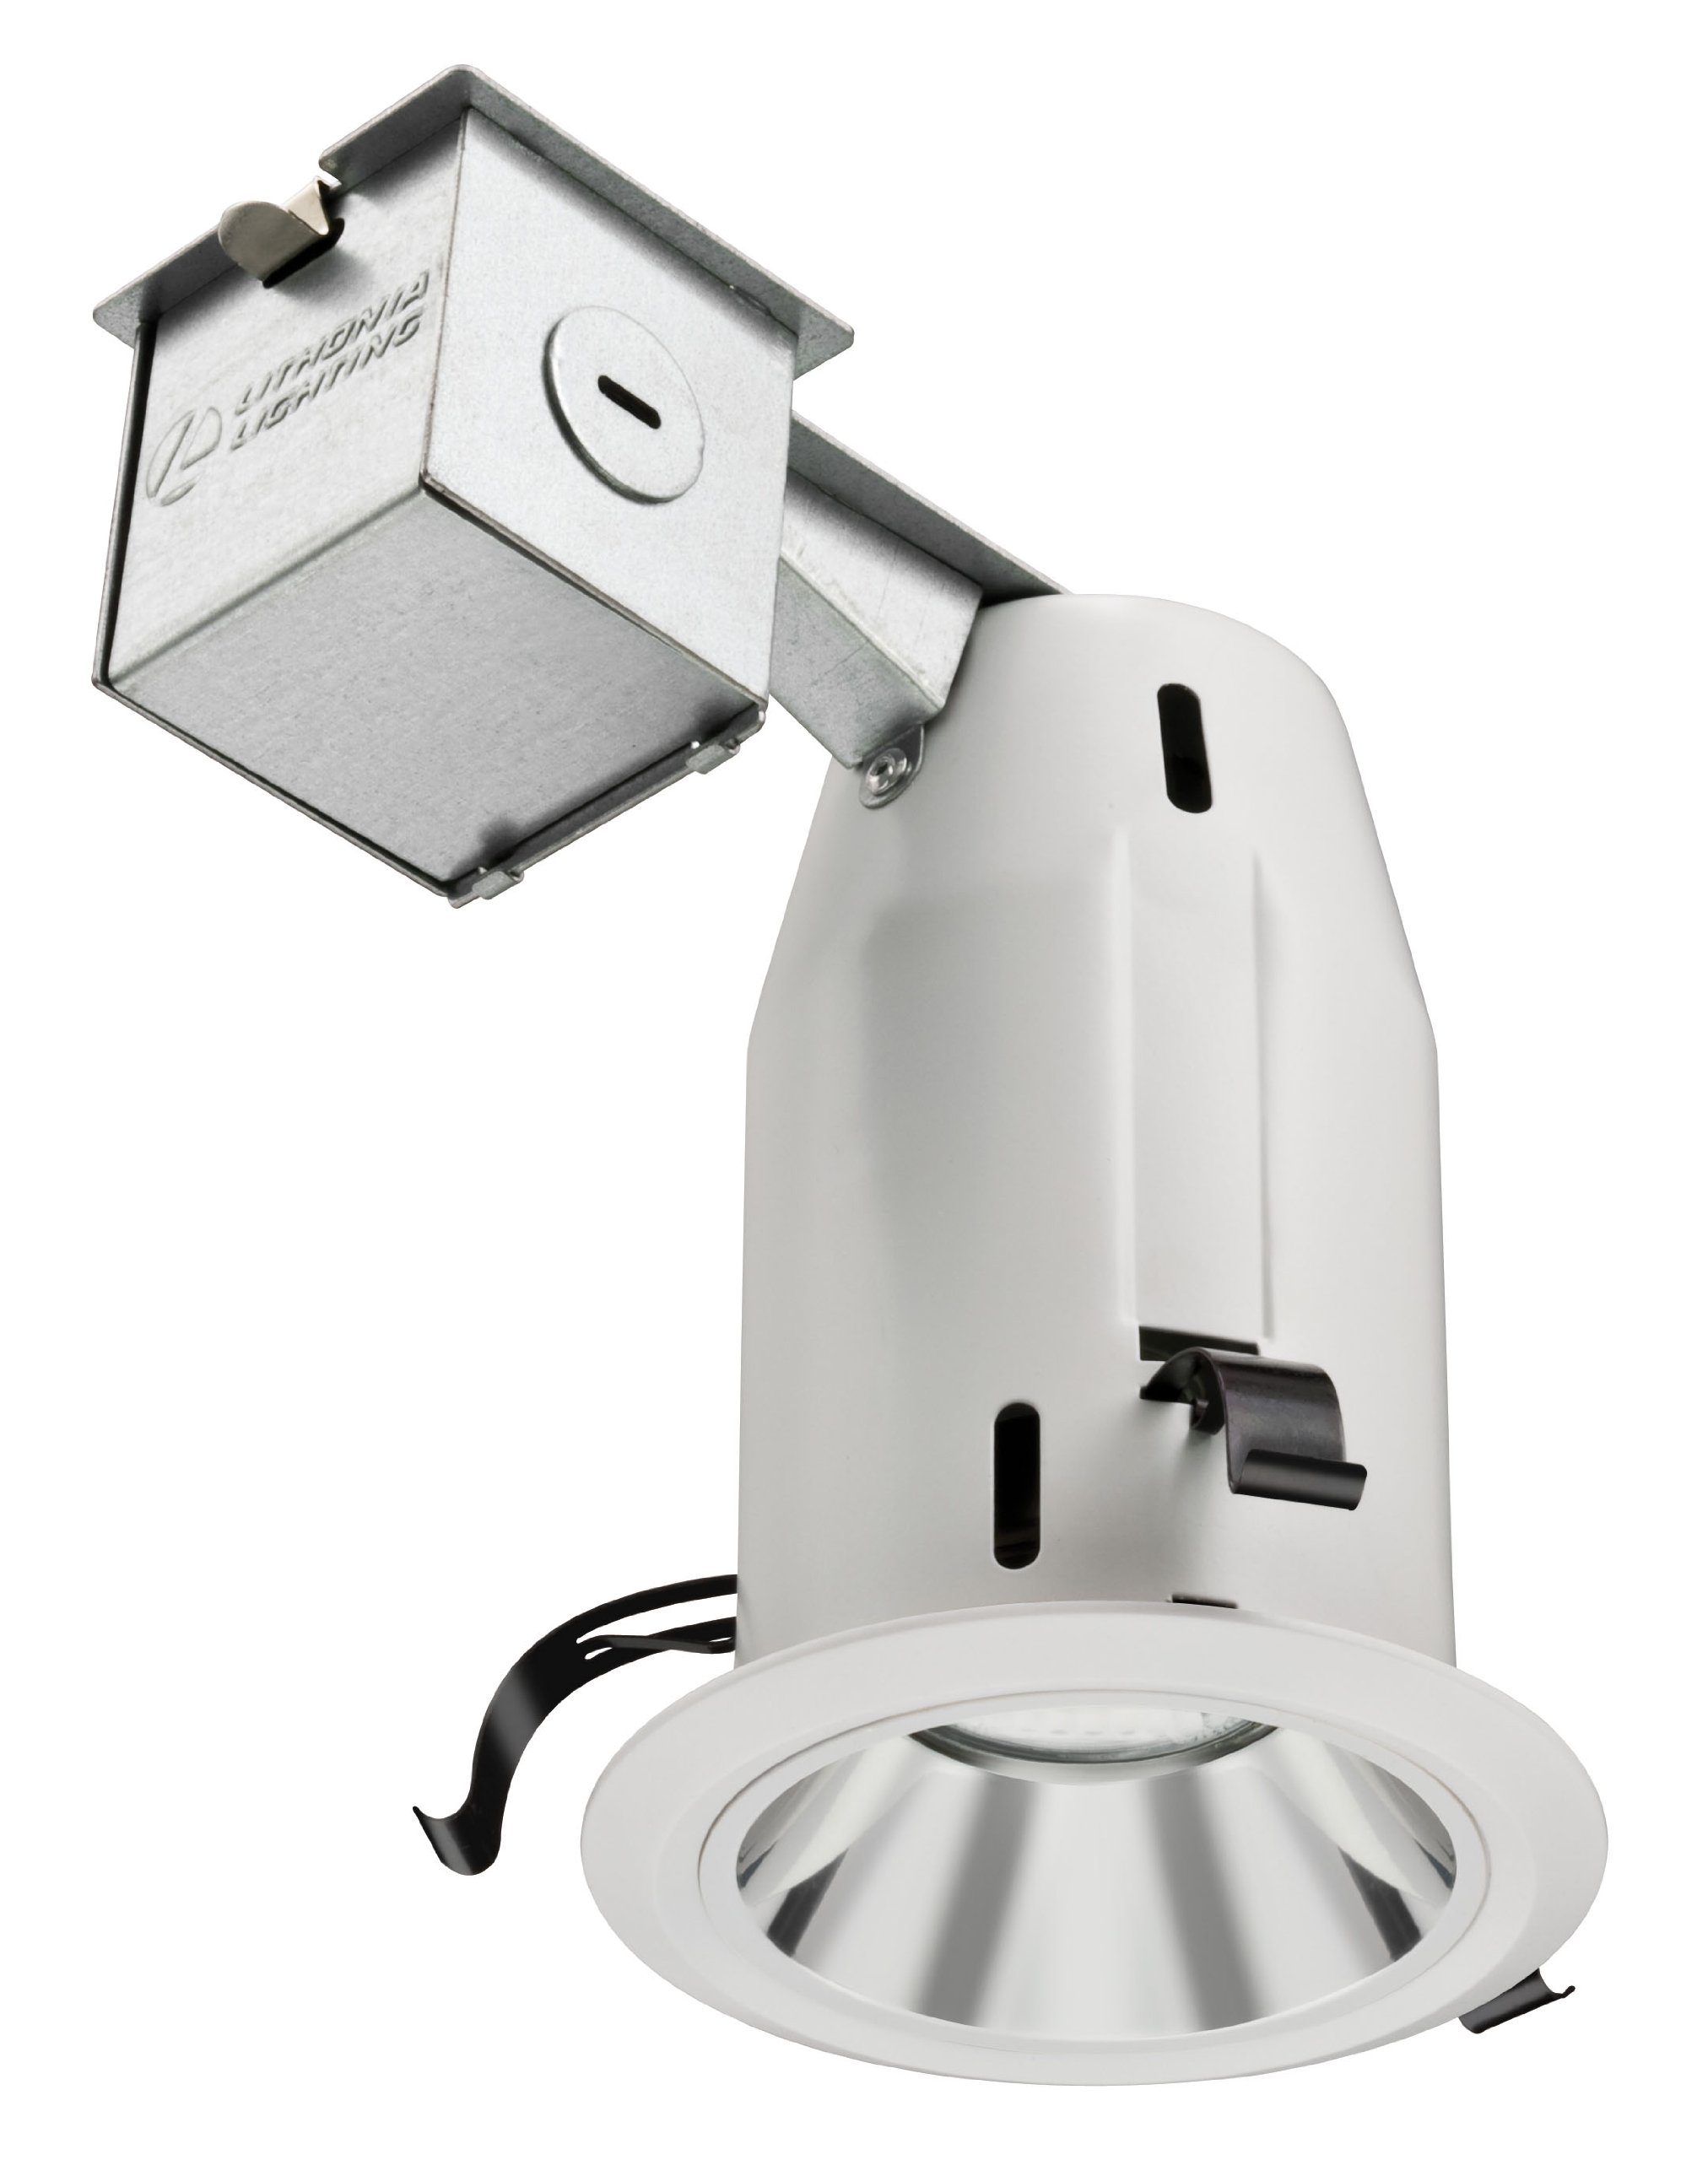 Lithonia Lighting LK3OAZ PFMW 3-Inch Recessed Open Light Kit, Matte White by Lithonia Lighting (Image #1)